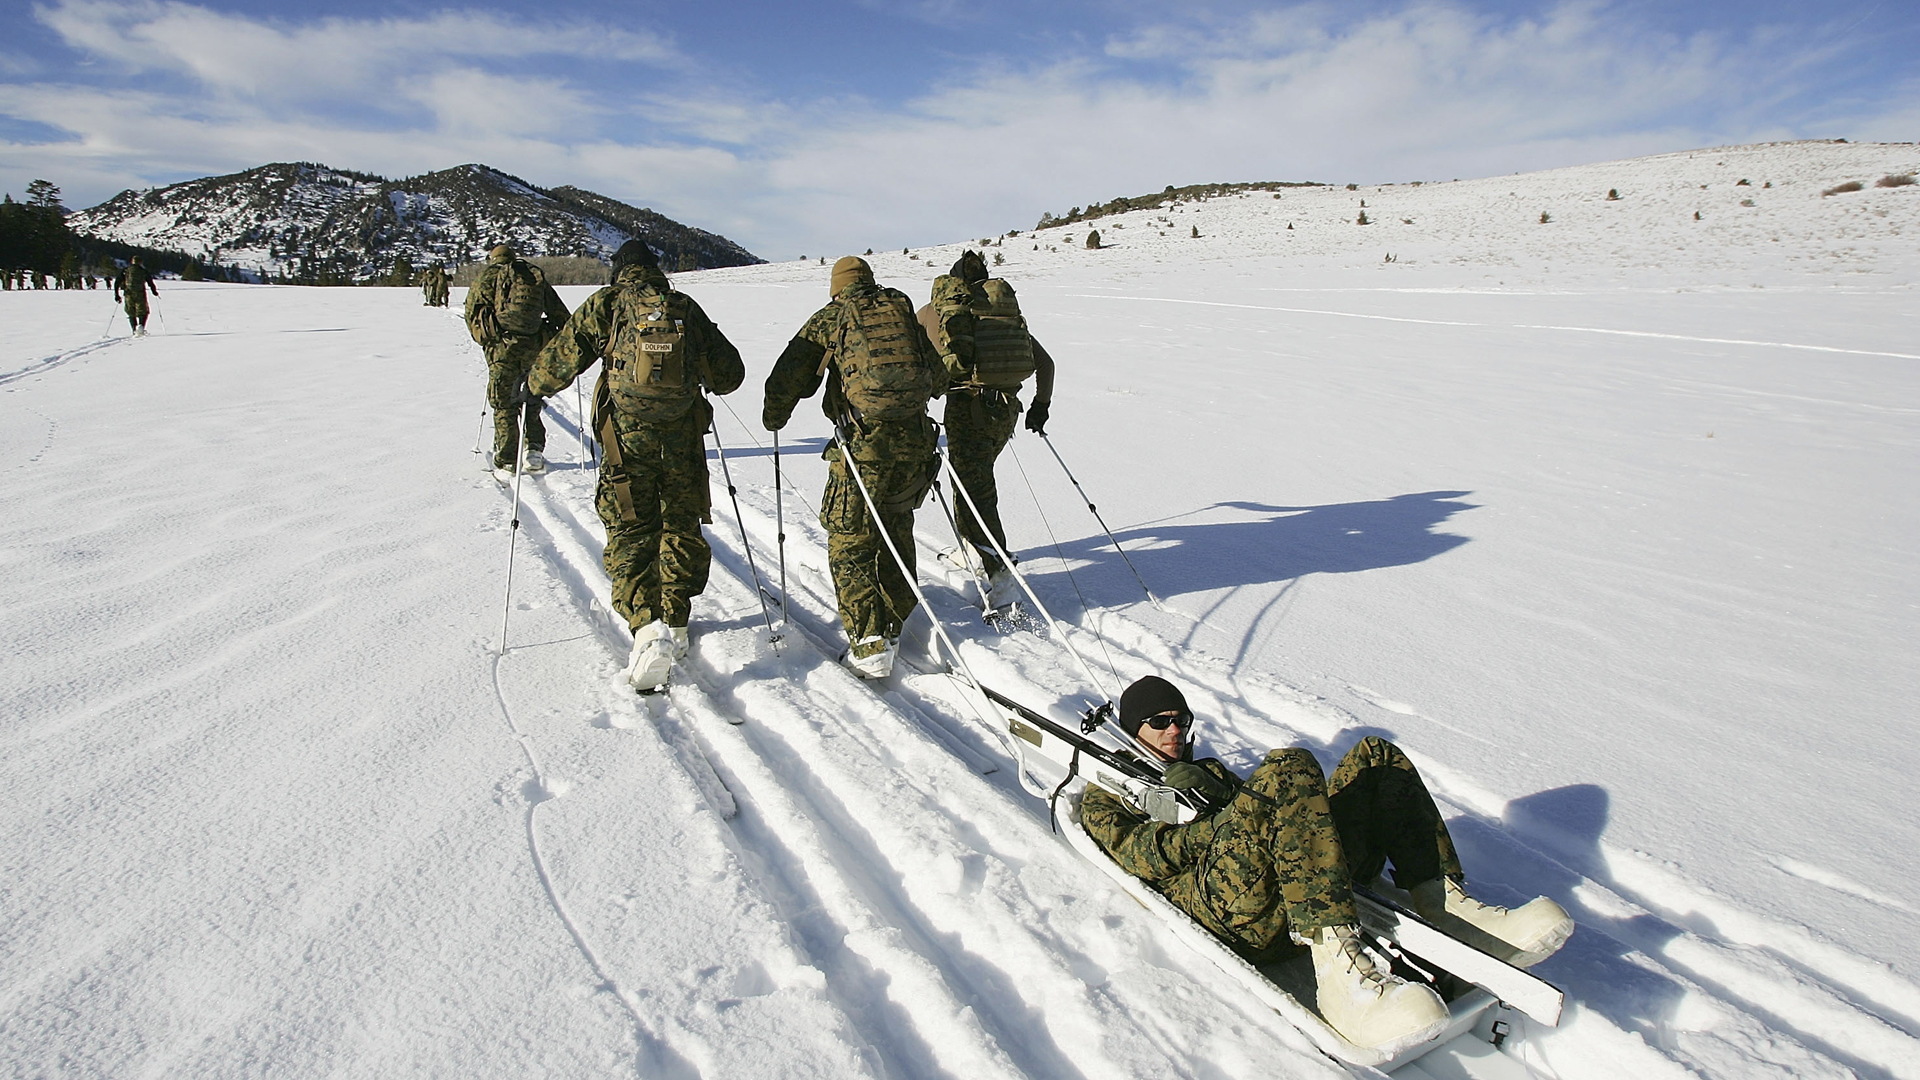 Marines learn to evacuate casualties using sleds and skis during training for winter conditions at the Marine Mountain Warfare Training Center on Dec. 9, 2005, near Bridgeport. (Credit: David McNew/Getty Images)